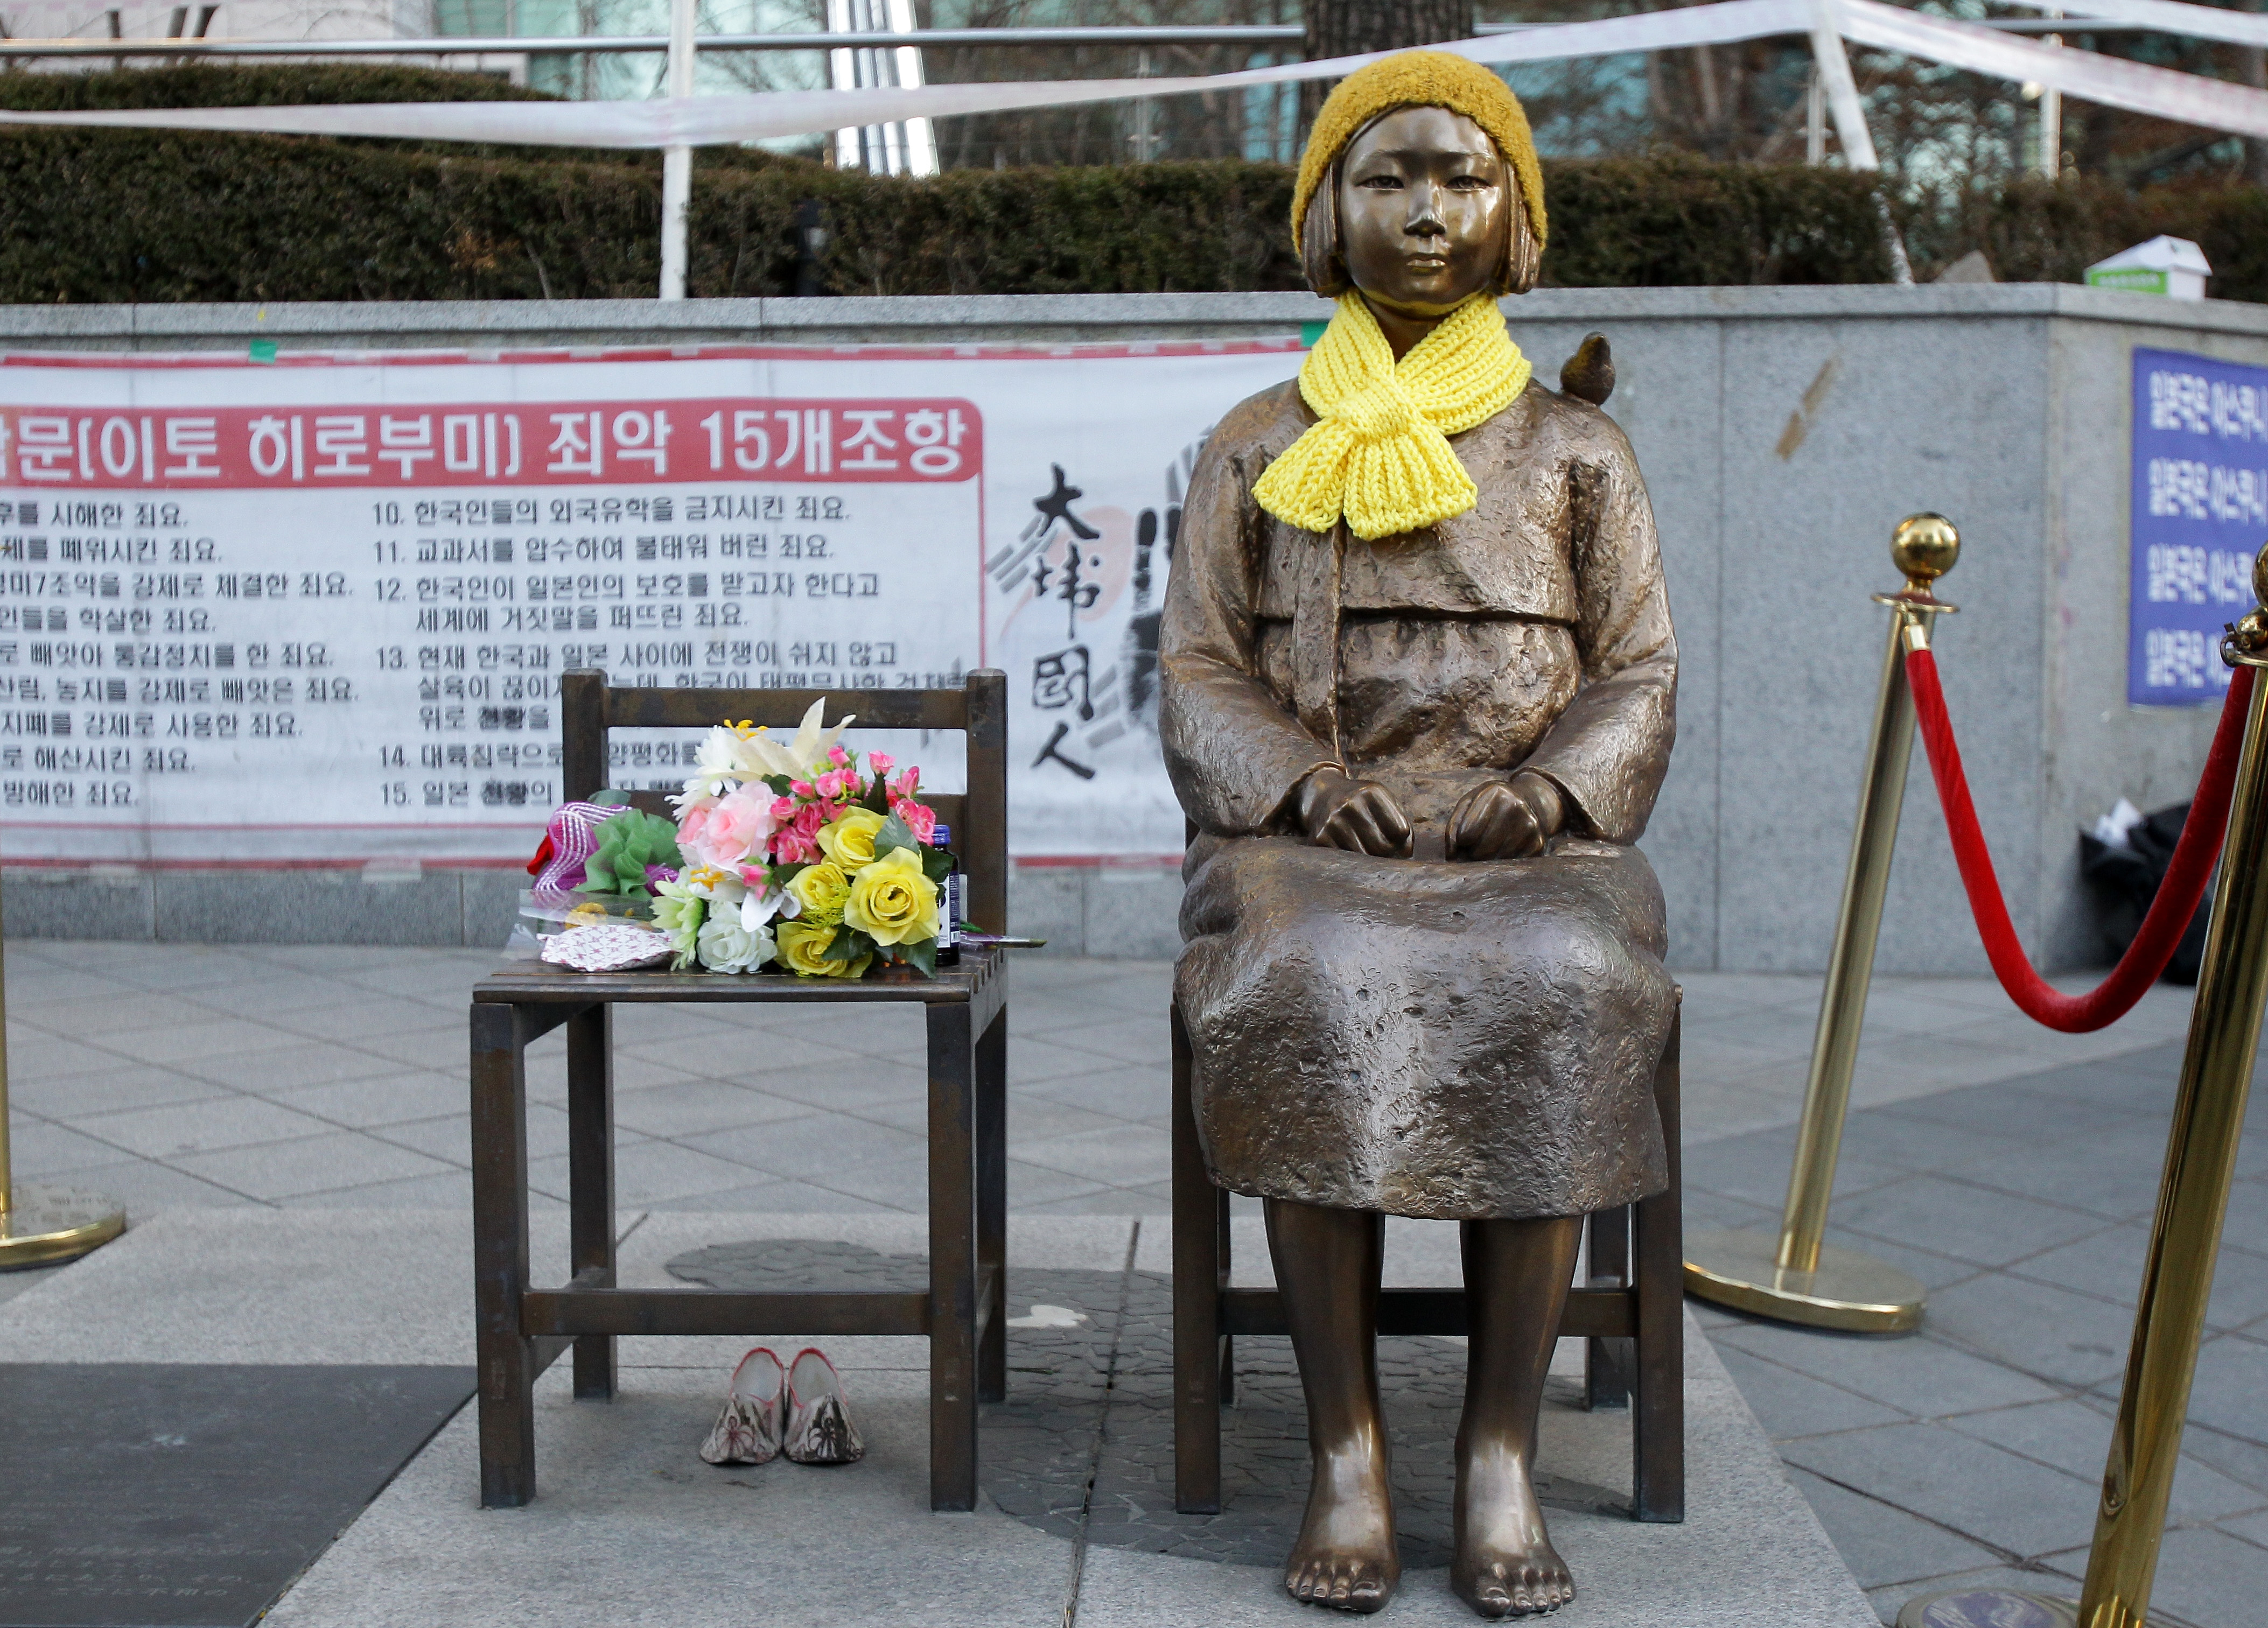 A statue of a girl symbolizing the issue of 'comfort women' in front of the Japanese embassy in Seoul on Dec. 28, 2015